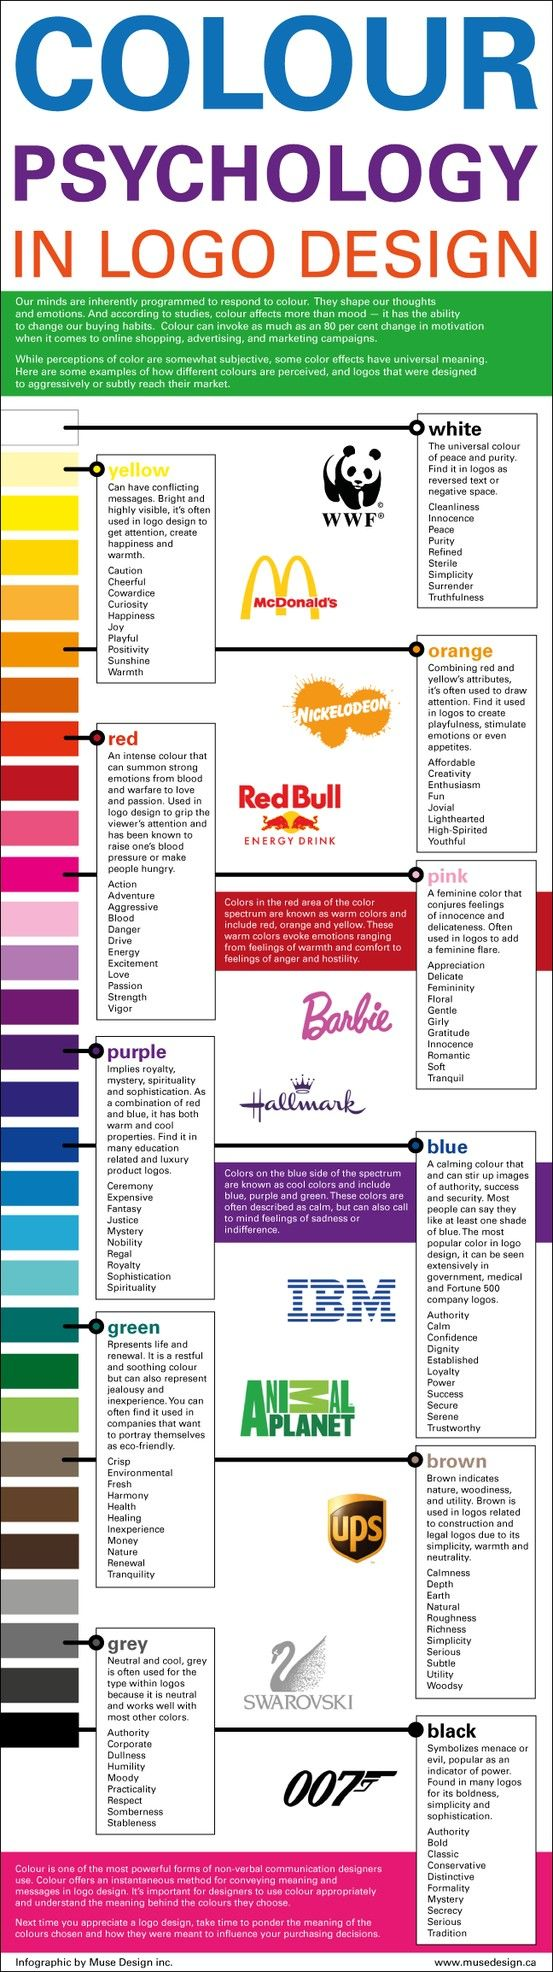 Paint colors website - Color Psychology In Logo Design Graphicdesign This Infographic Is How We Interpret Different Famous